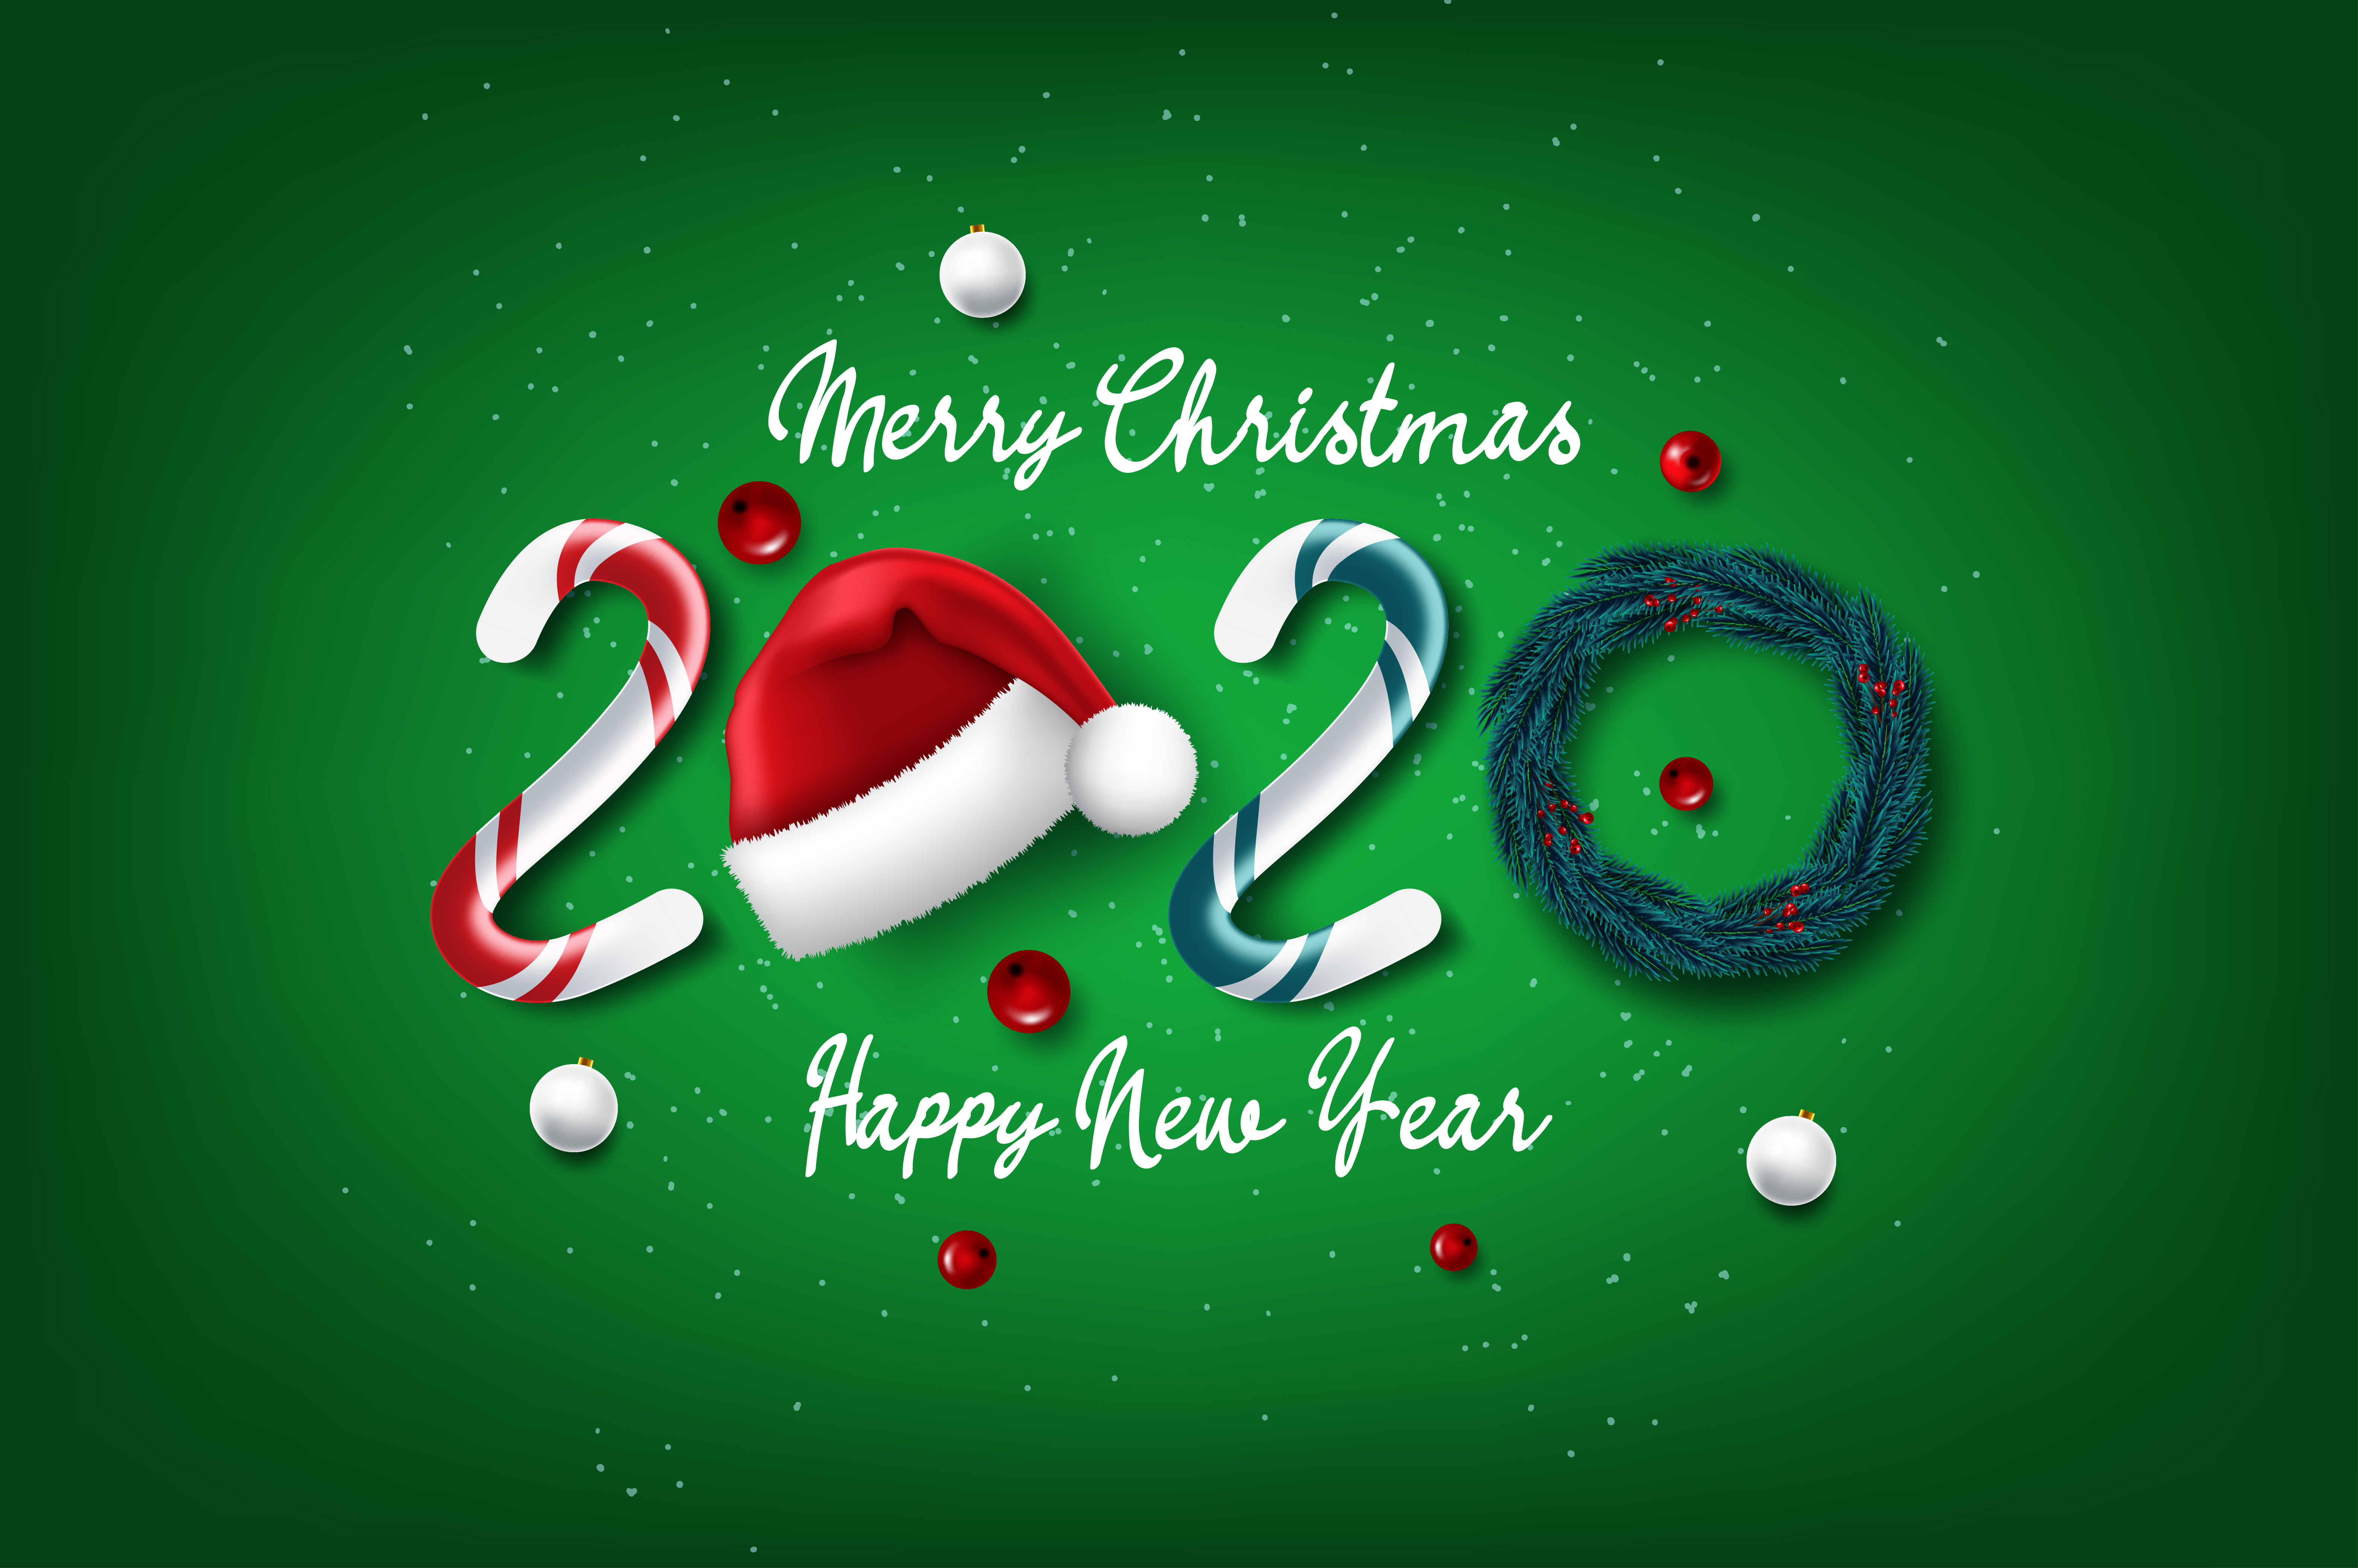 2020 new year and Christmas card   Download Free Vectors, Clipart